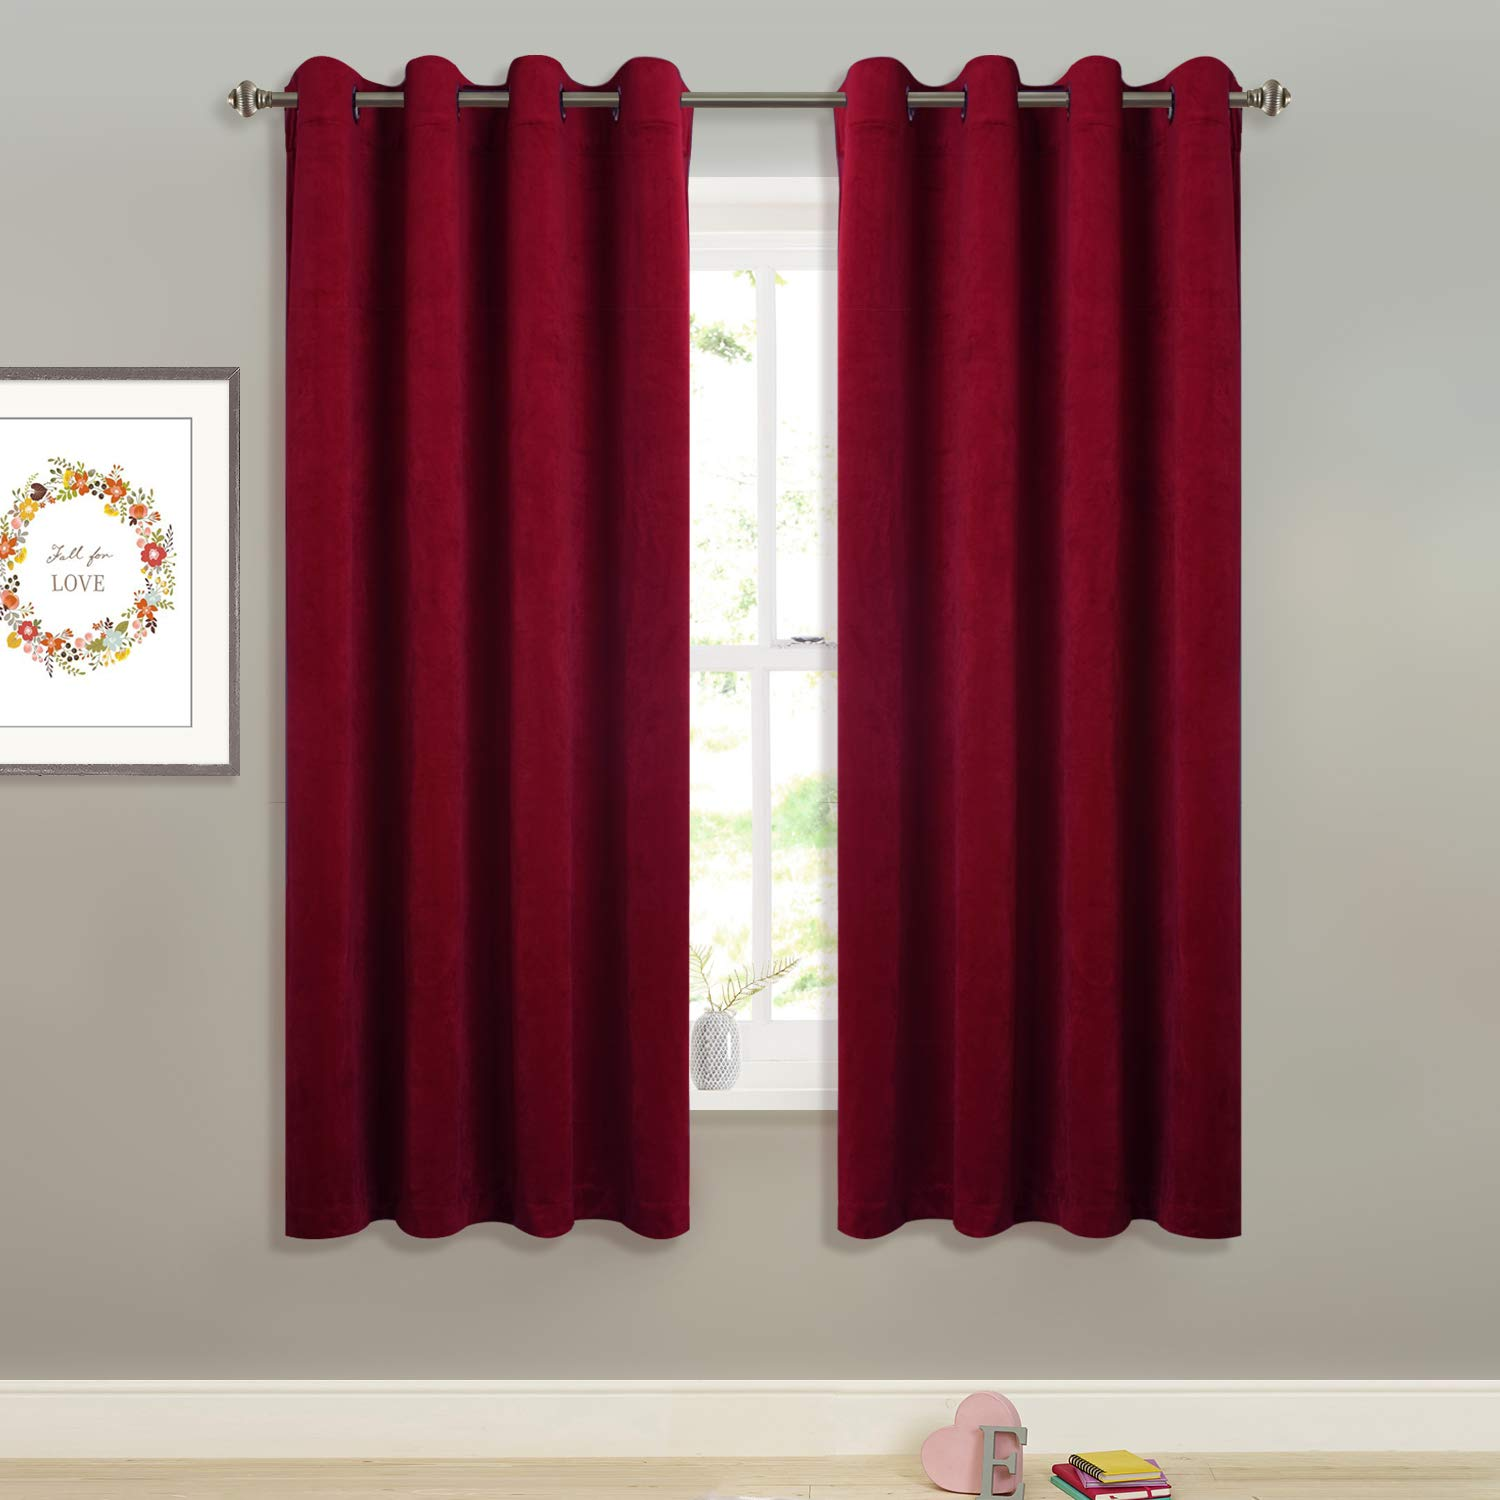 """StangH Red Velvet Curtains Short - Super Soft Thick Velvet Texture Drapes Room Darkening Window Treatment Set Privacy Panel Blinds, Wide 52"""" by Long 63"""", Double Panels"""